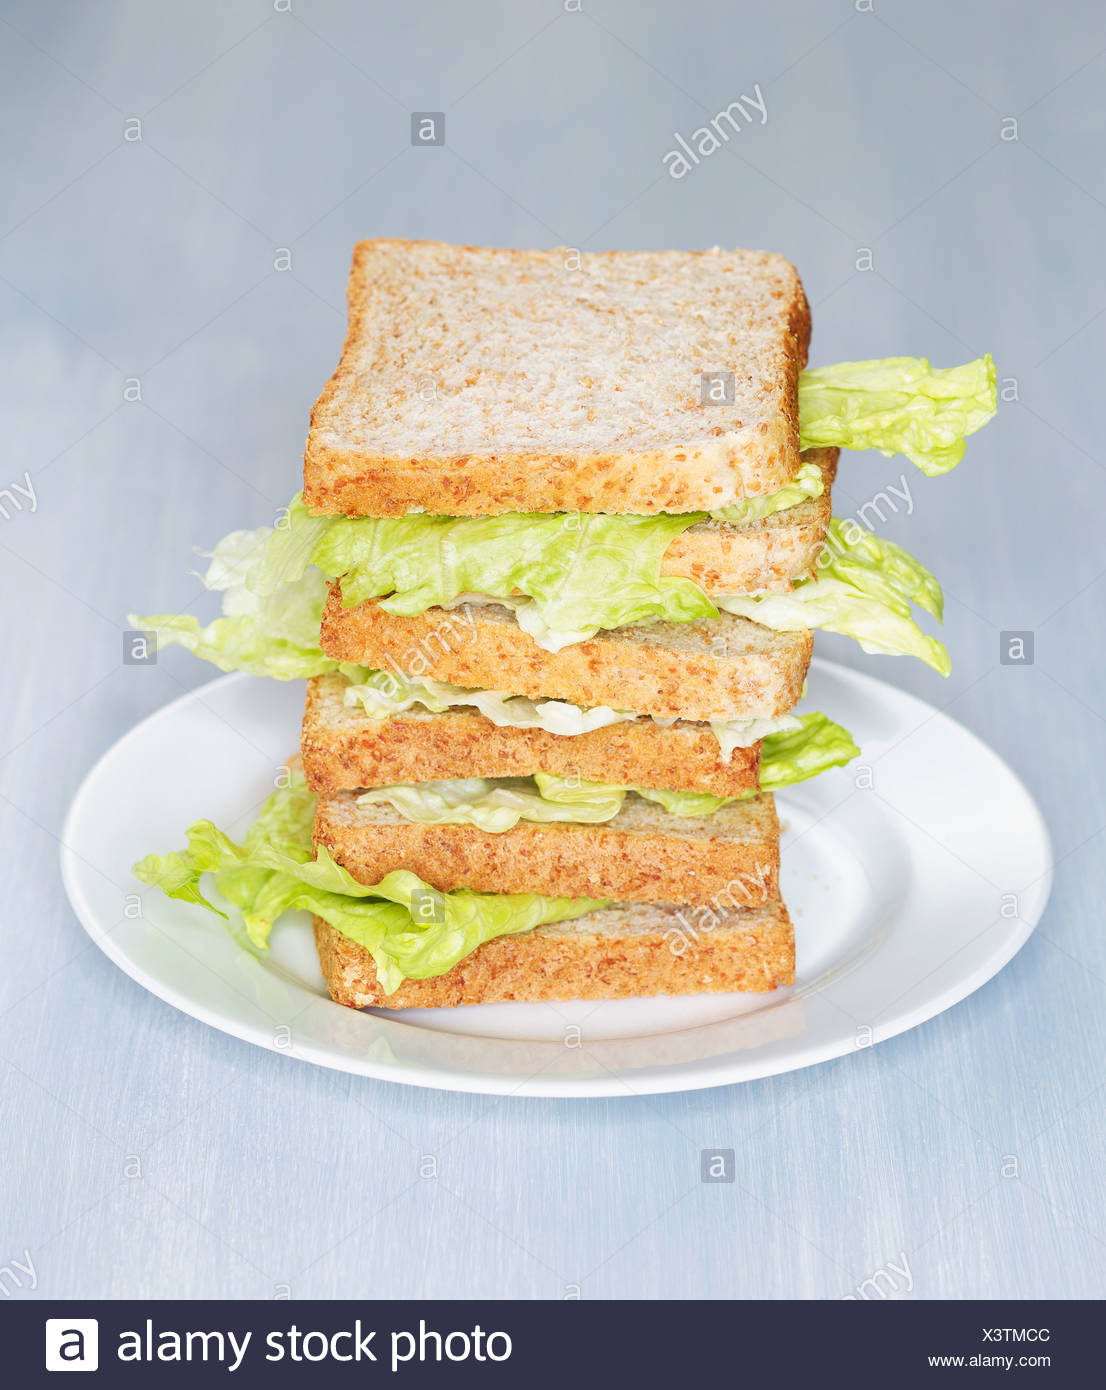 Stacked wholemeal toast slices with Iceberg Salad on plate - Stock Image